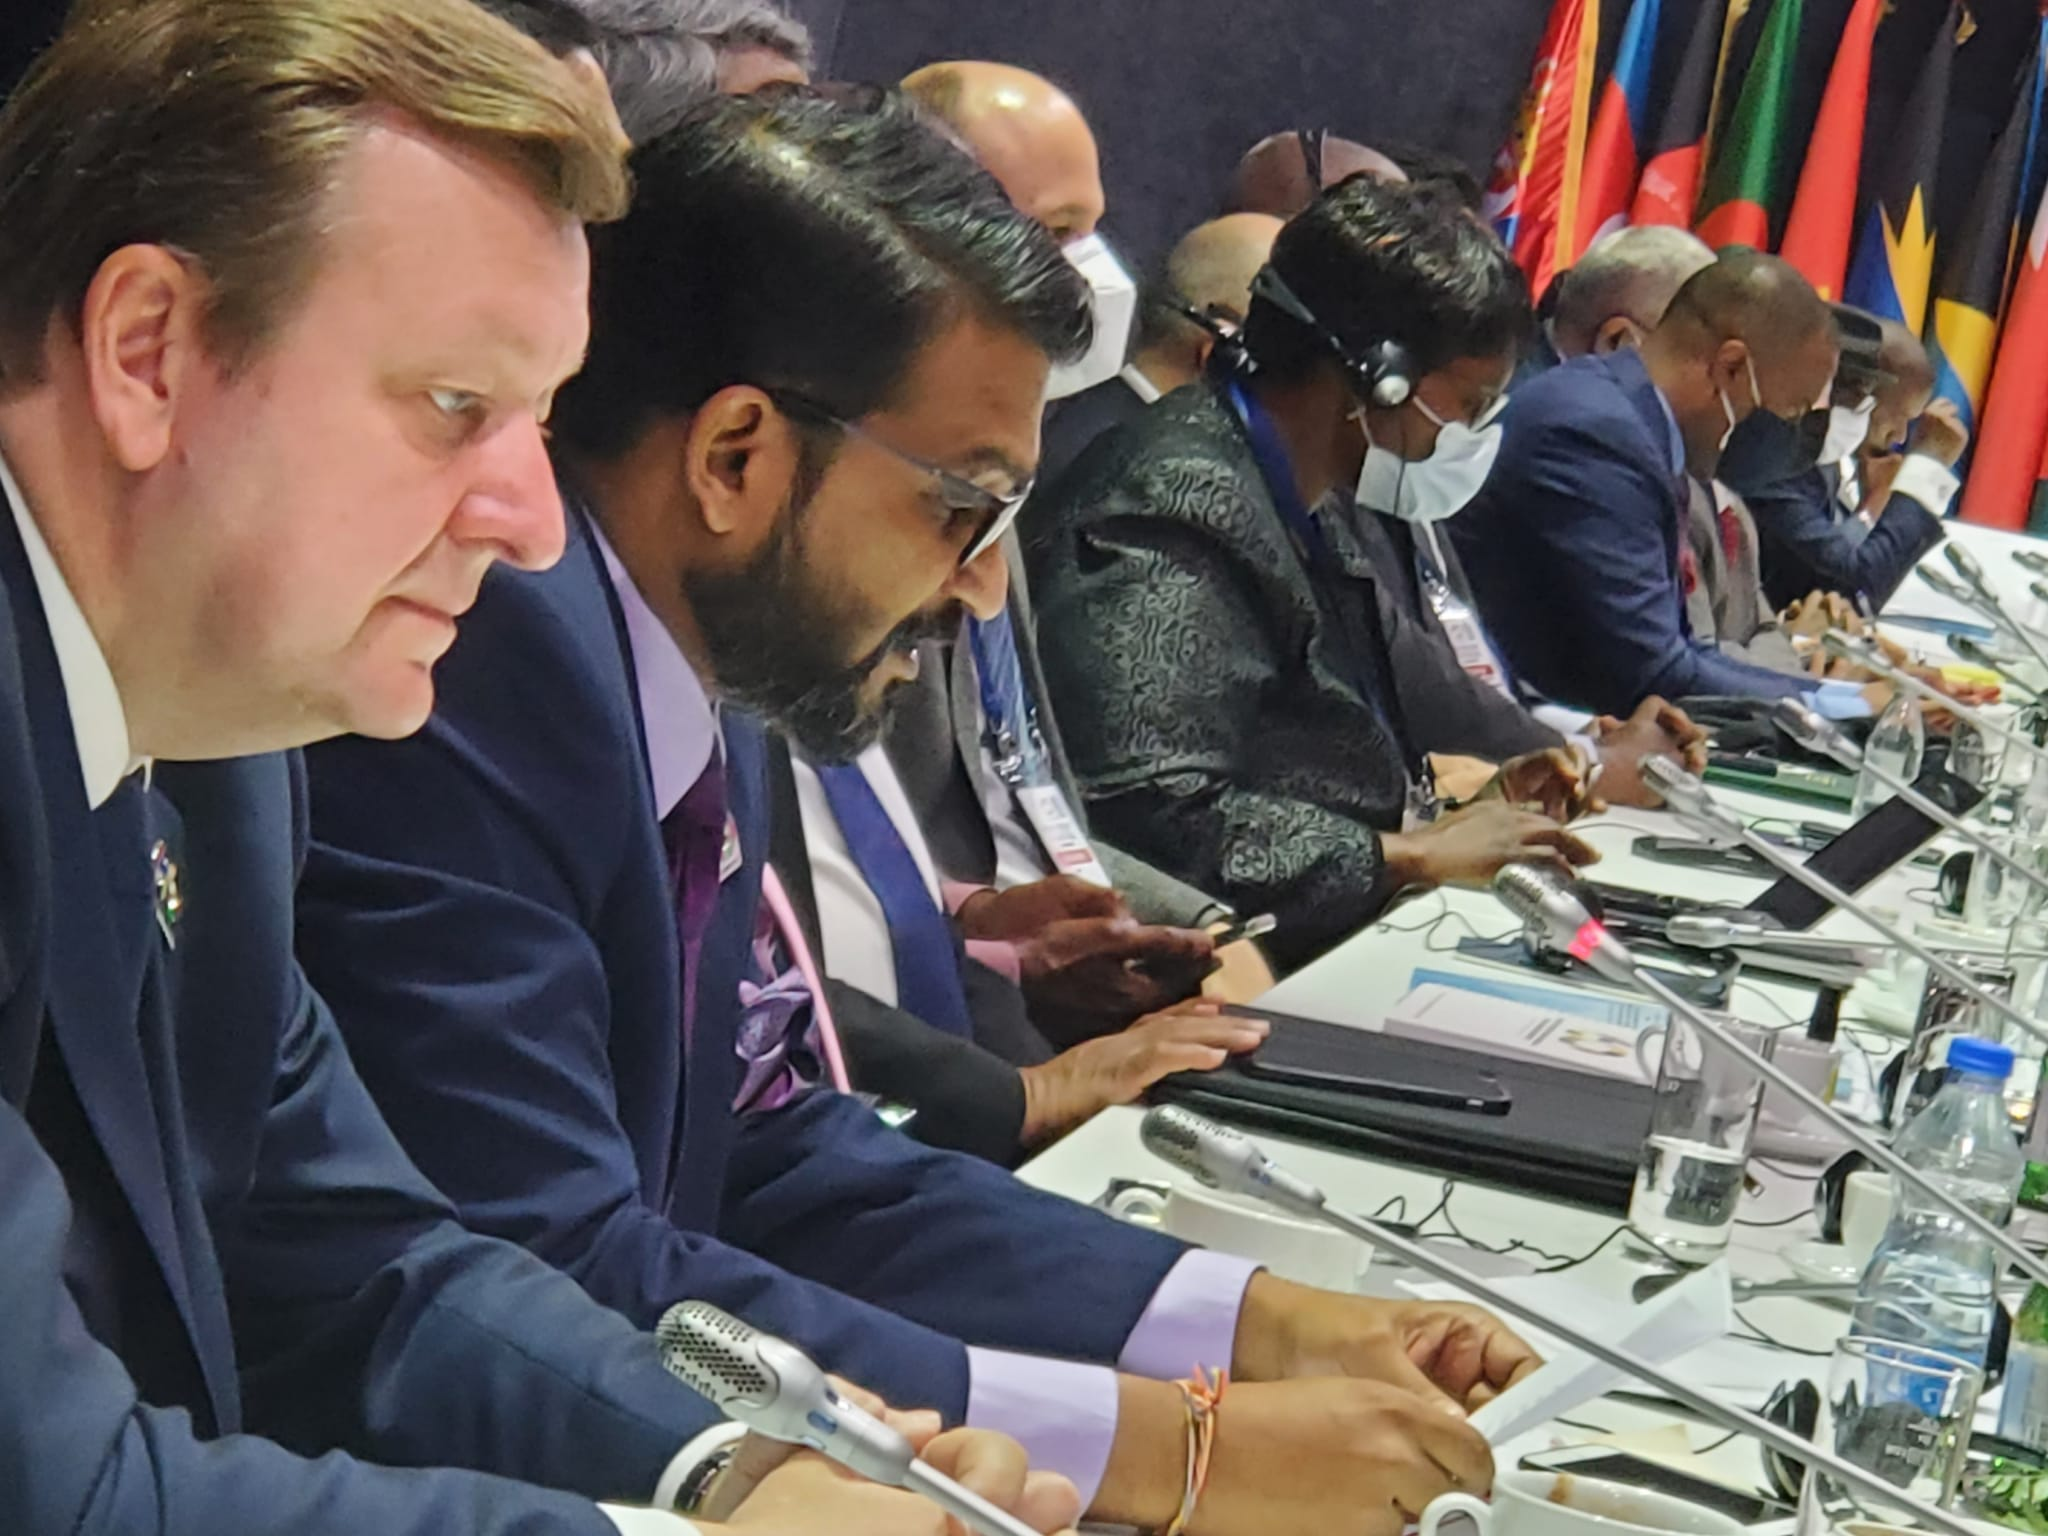 Sri Lanka remains committed to principles and goals of the Non-Aligned movement – State Minister Balasuriya